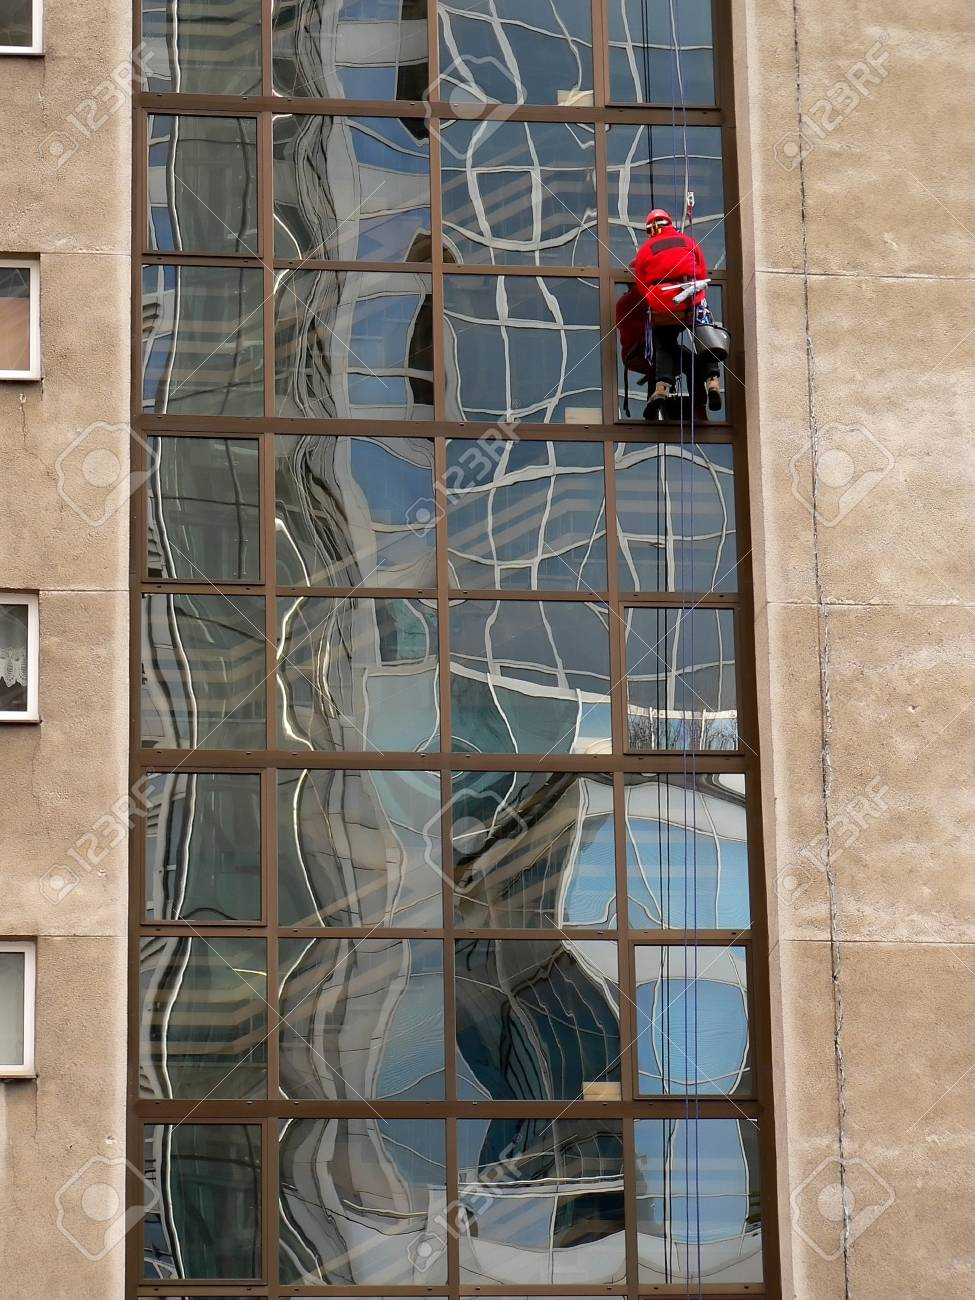 windows cleaner in the city of Warsaw in Poland Stock Photo - 1684581